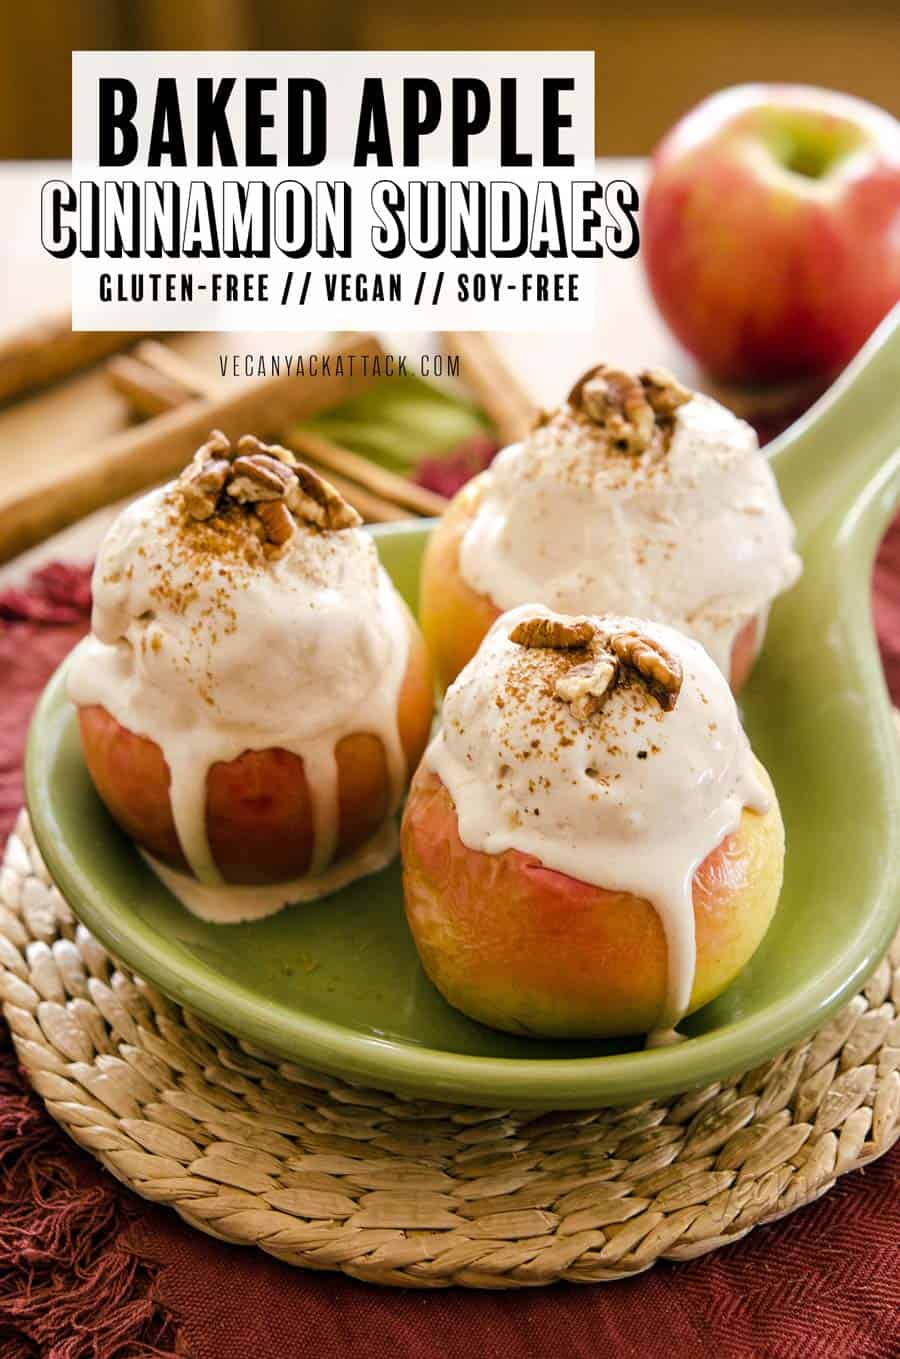 This recipe for Baked Apple Cinnamon Sundaes is downright delicious and full of autumnal flavors. It involves roasted apples (mostly) whole and whipping up homemade vegan ice cream! Plus, there's a no-churn option for those with no ice cream maker. #Vegan #dairyfree #glutenfree #fallrecipes #soyfree